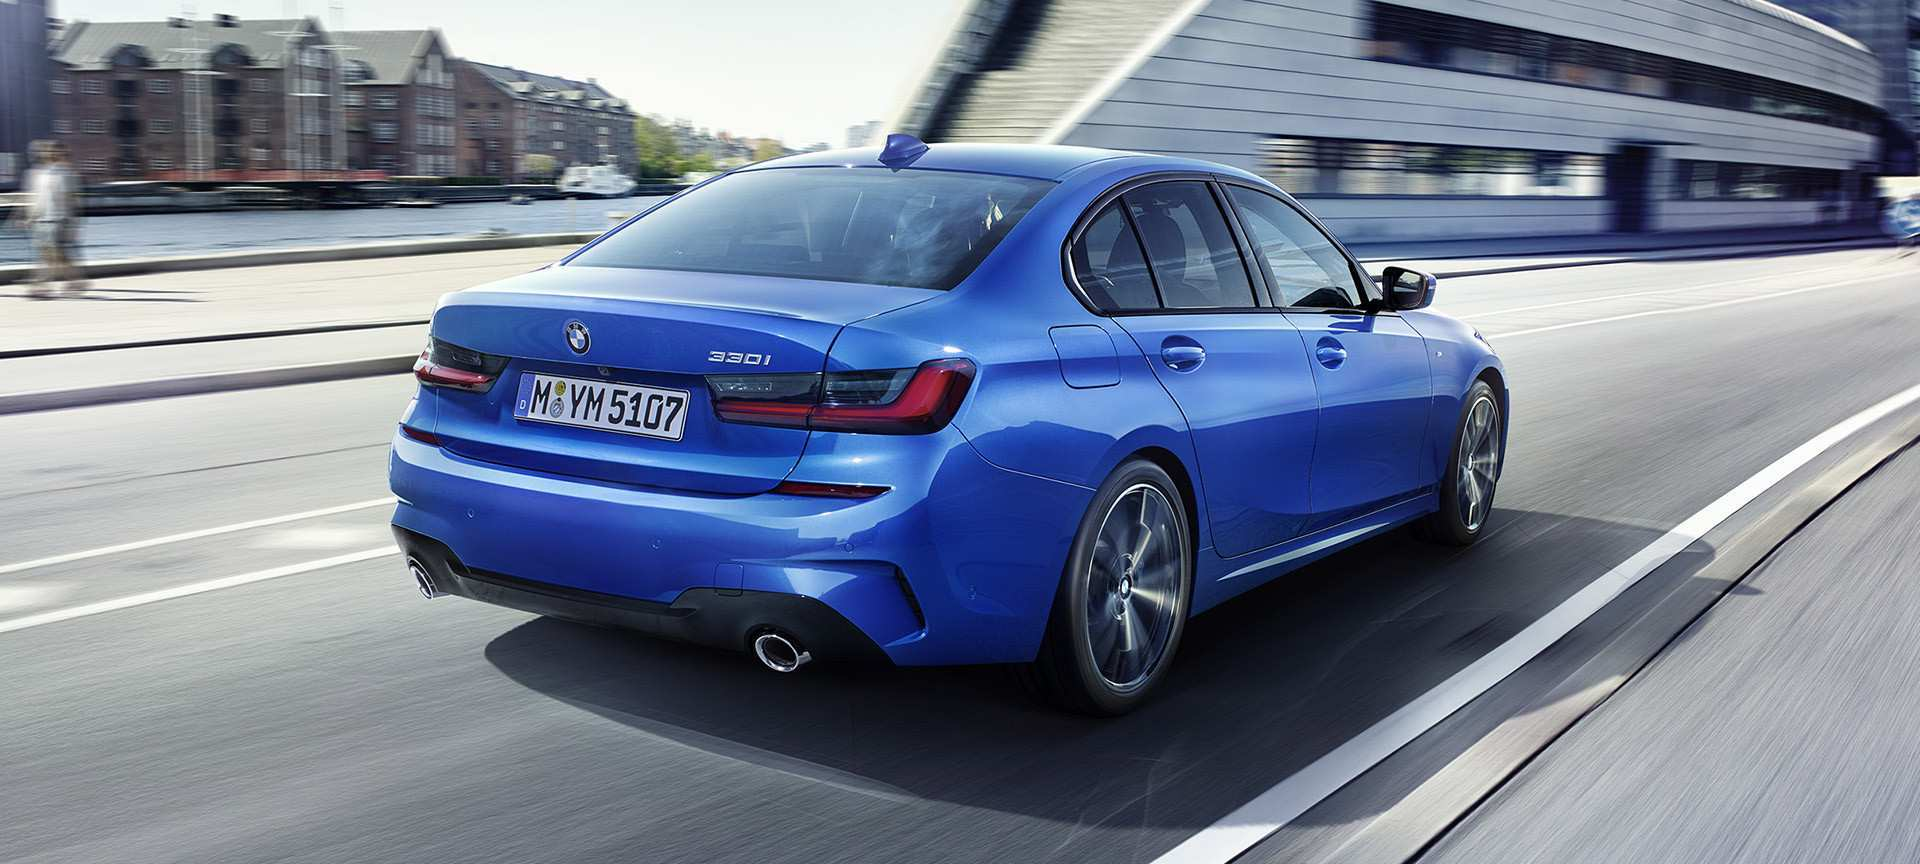 38 Best 2019 Bmw Ordering Guide Overview